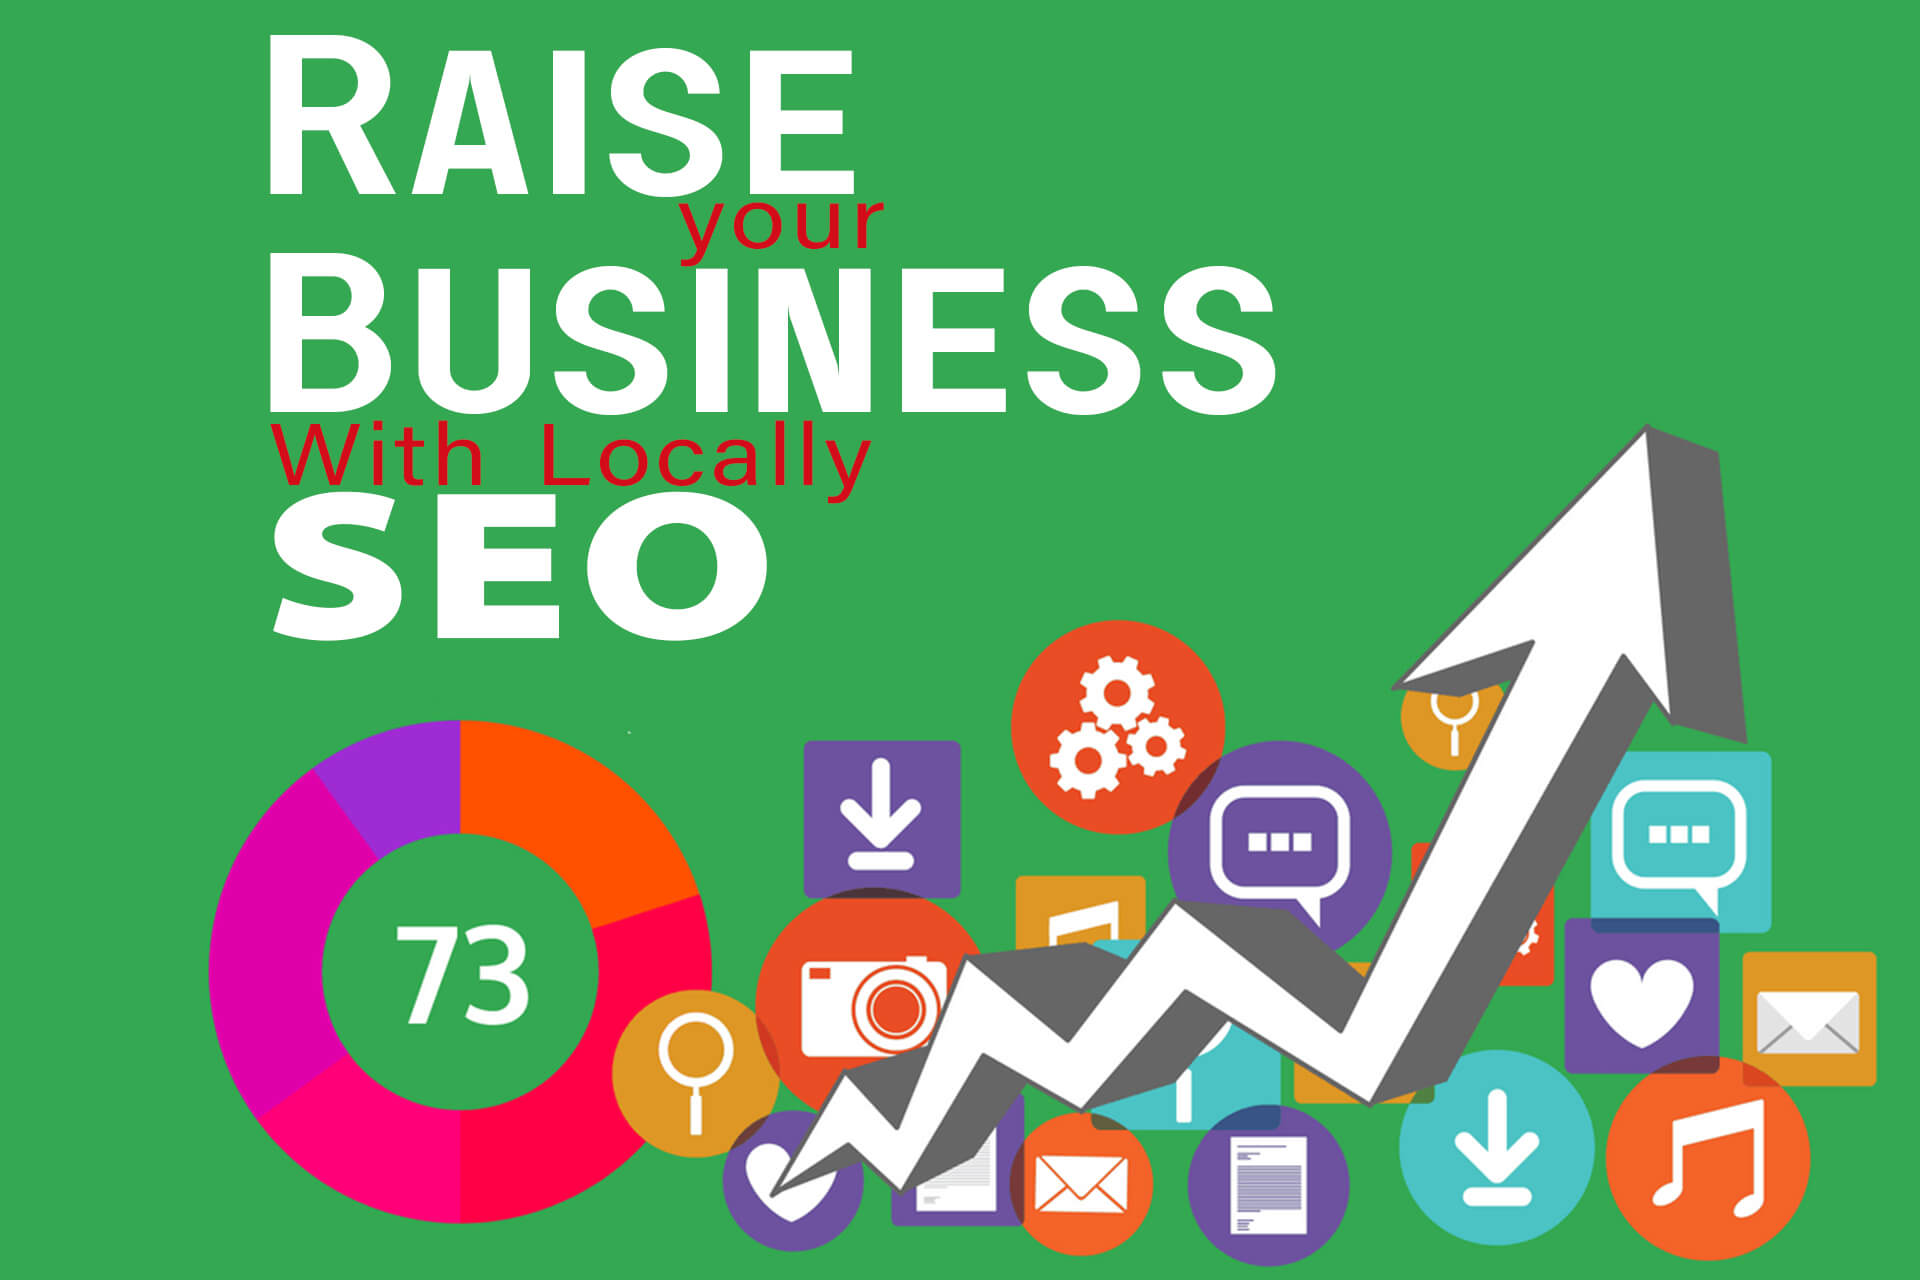 Raise Your Business Locally With SEO